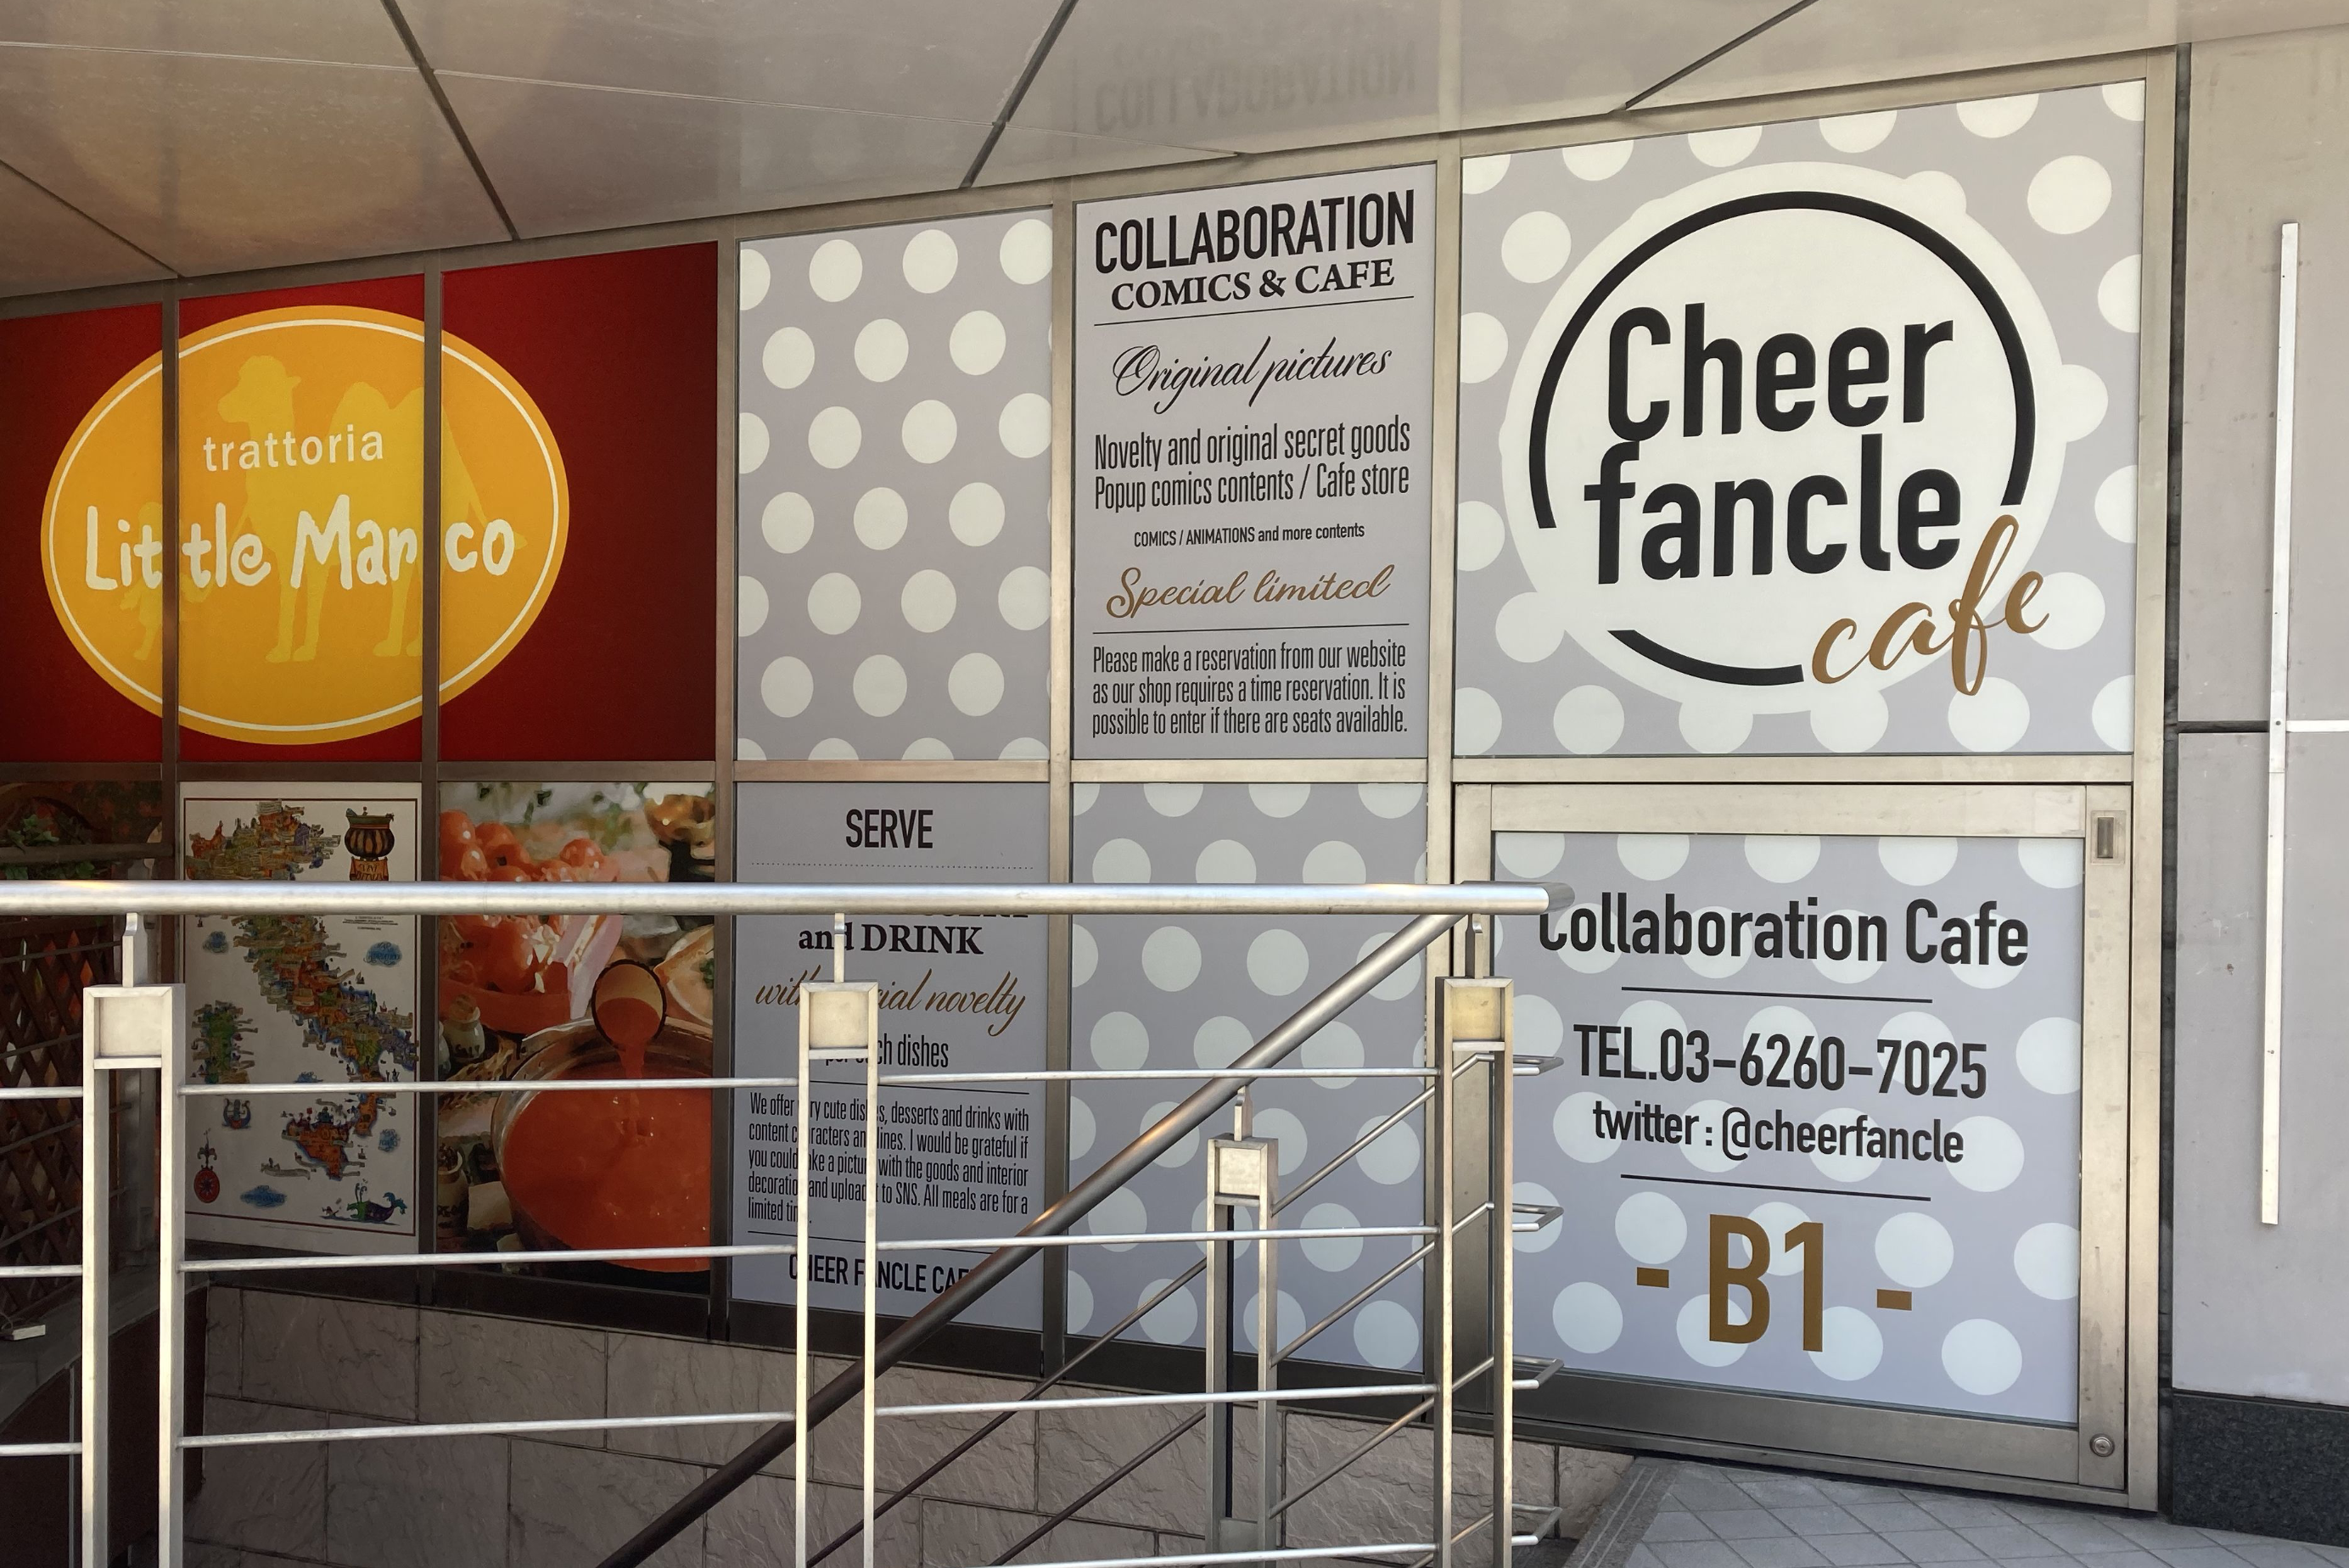 「Cheer fancle cafe」看板2